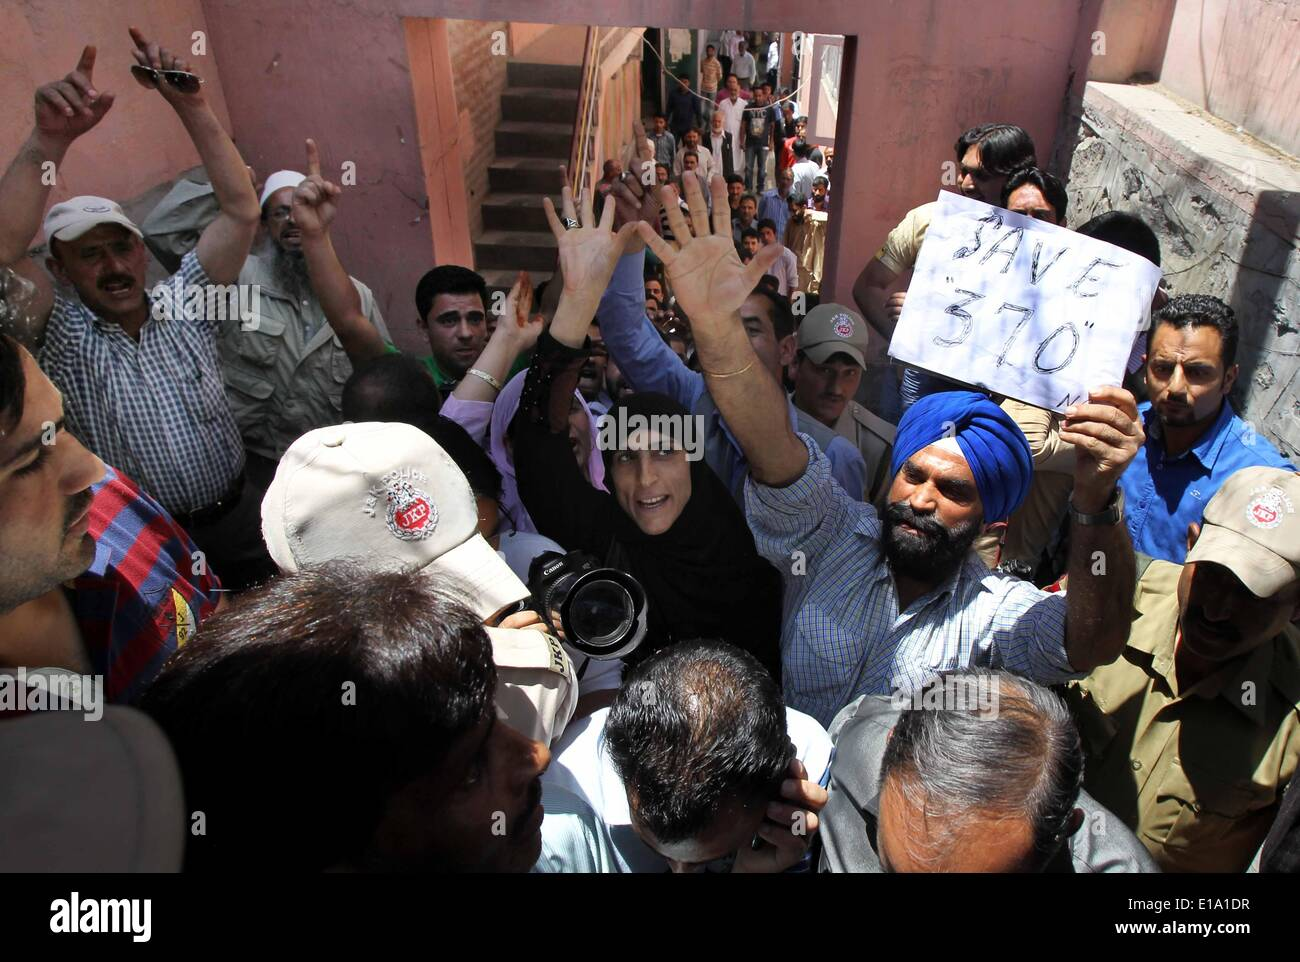 Srinagar, Kashmir. 28th May, 2014. Supporters of Indian-controlled Kashmir's ruling party National Conference shout Stock Photo